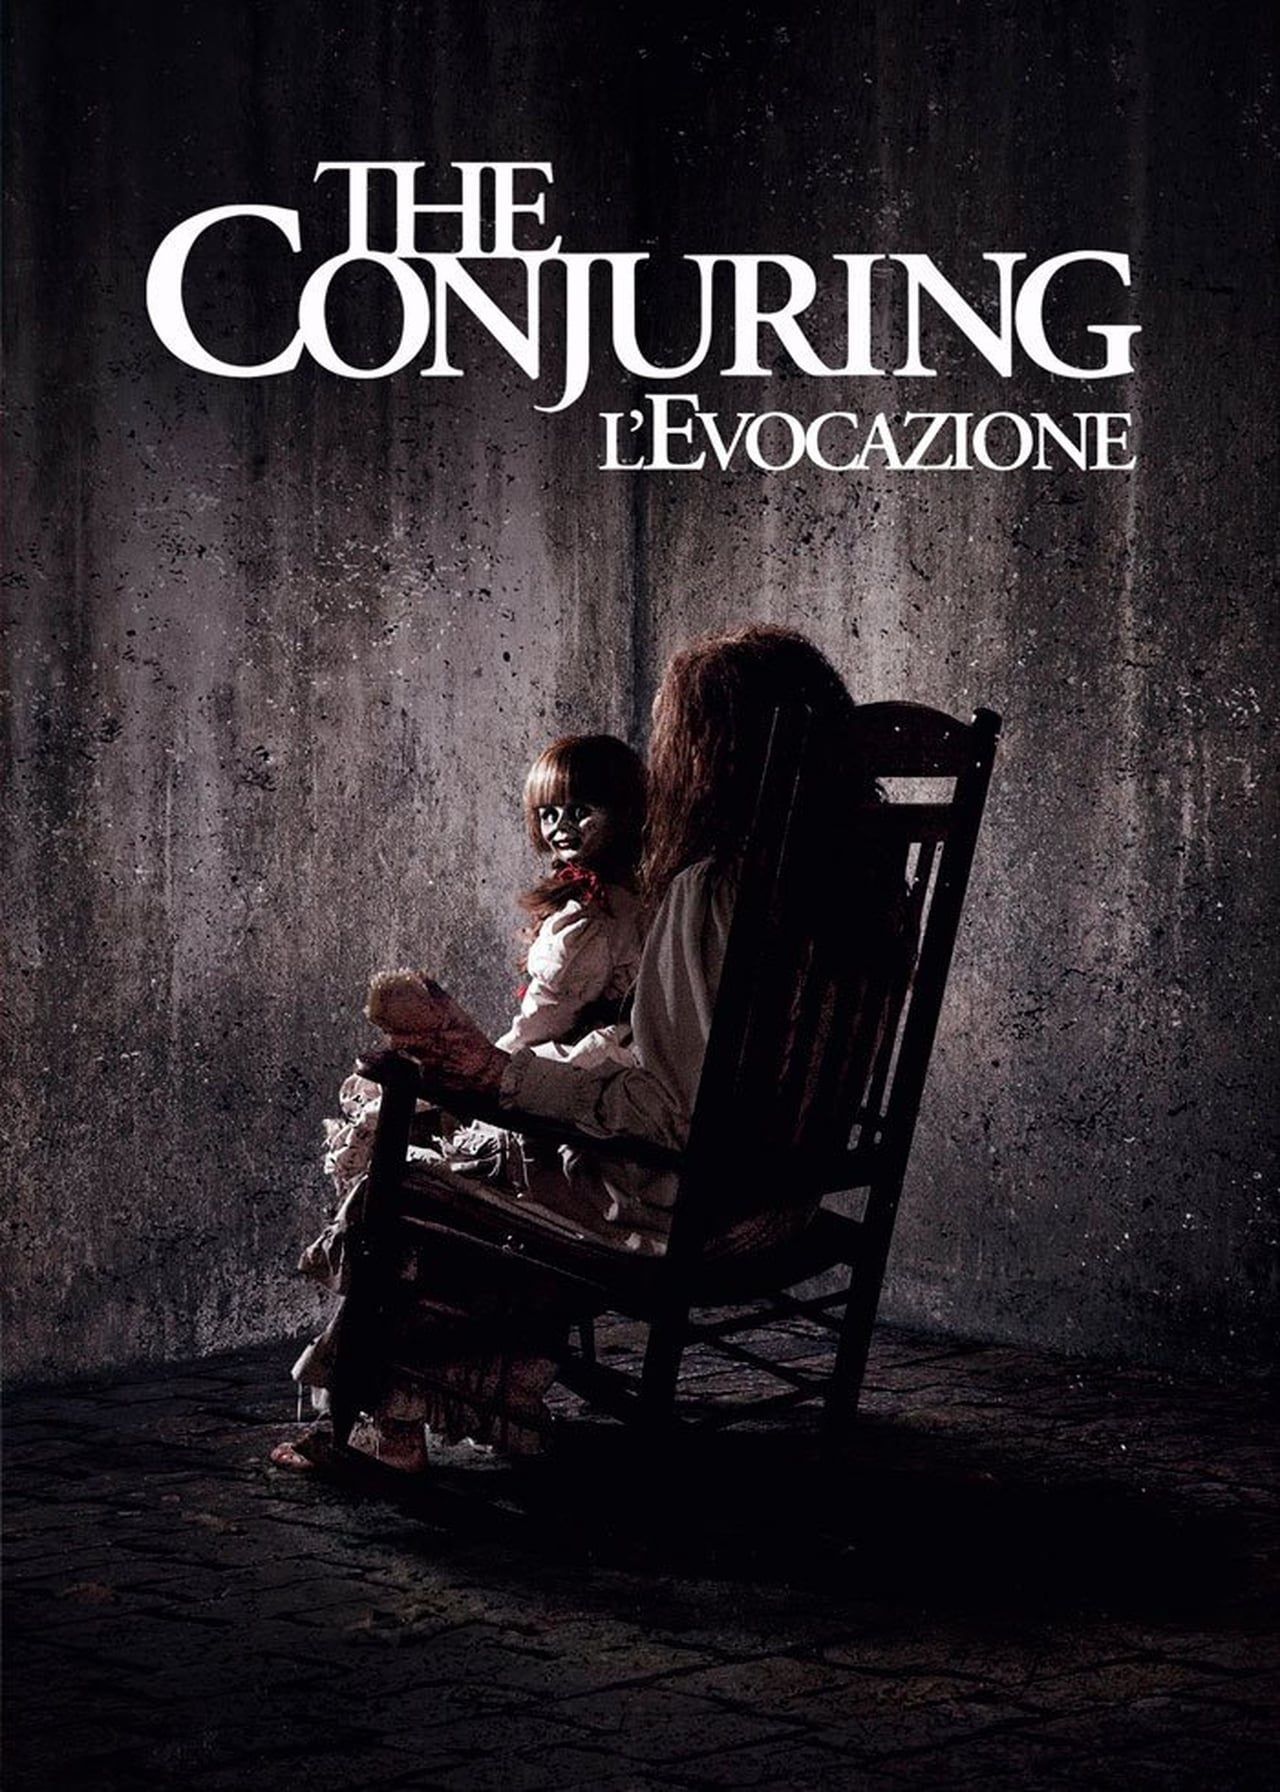 The Counjuring